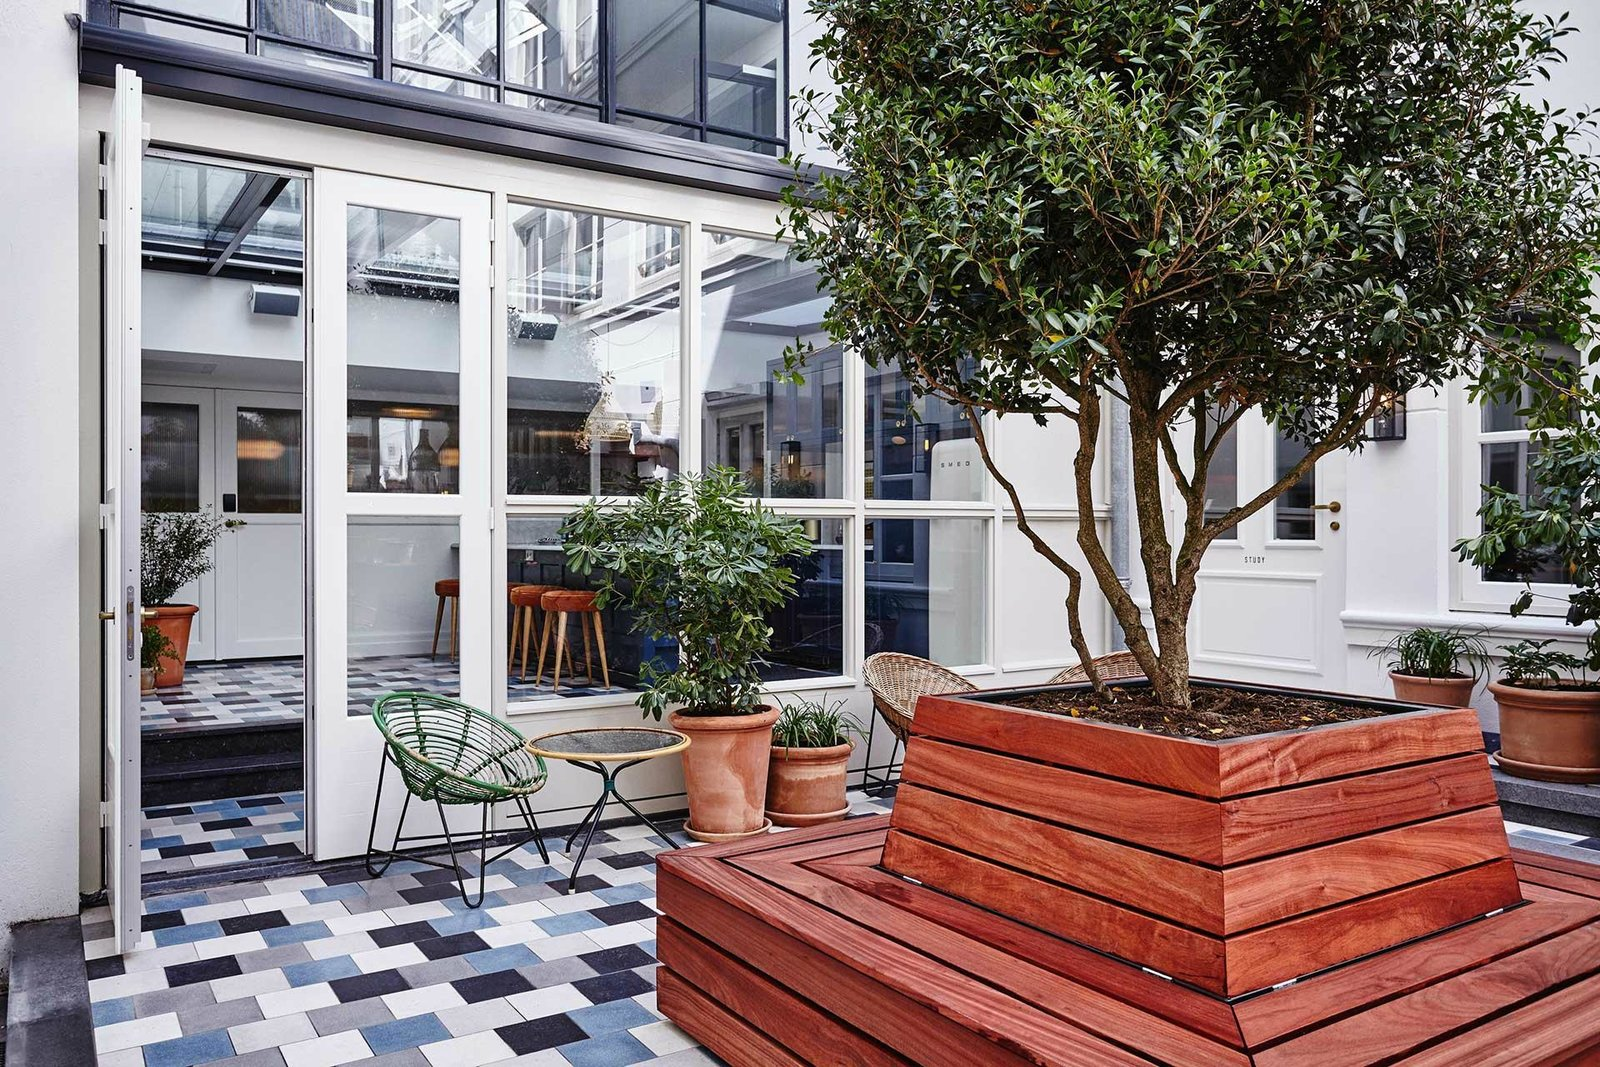 Outdoor, Small Pools, Tubs, Shower, Planters Patio, Porch, Deck, and Trees  The Hoxton Amsterdam